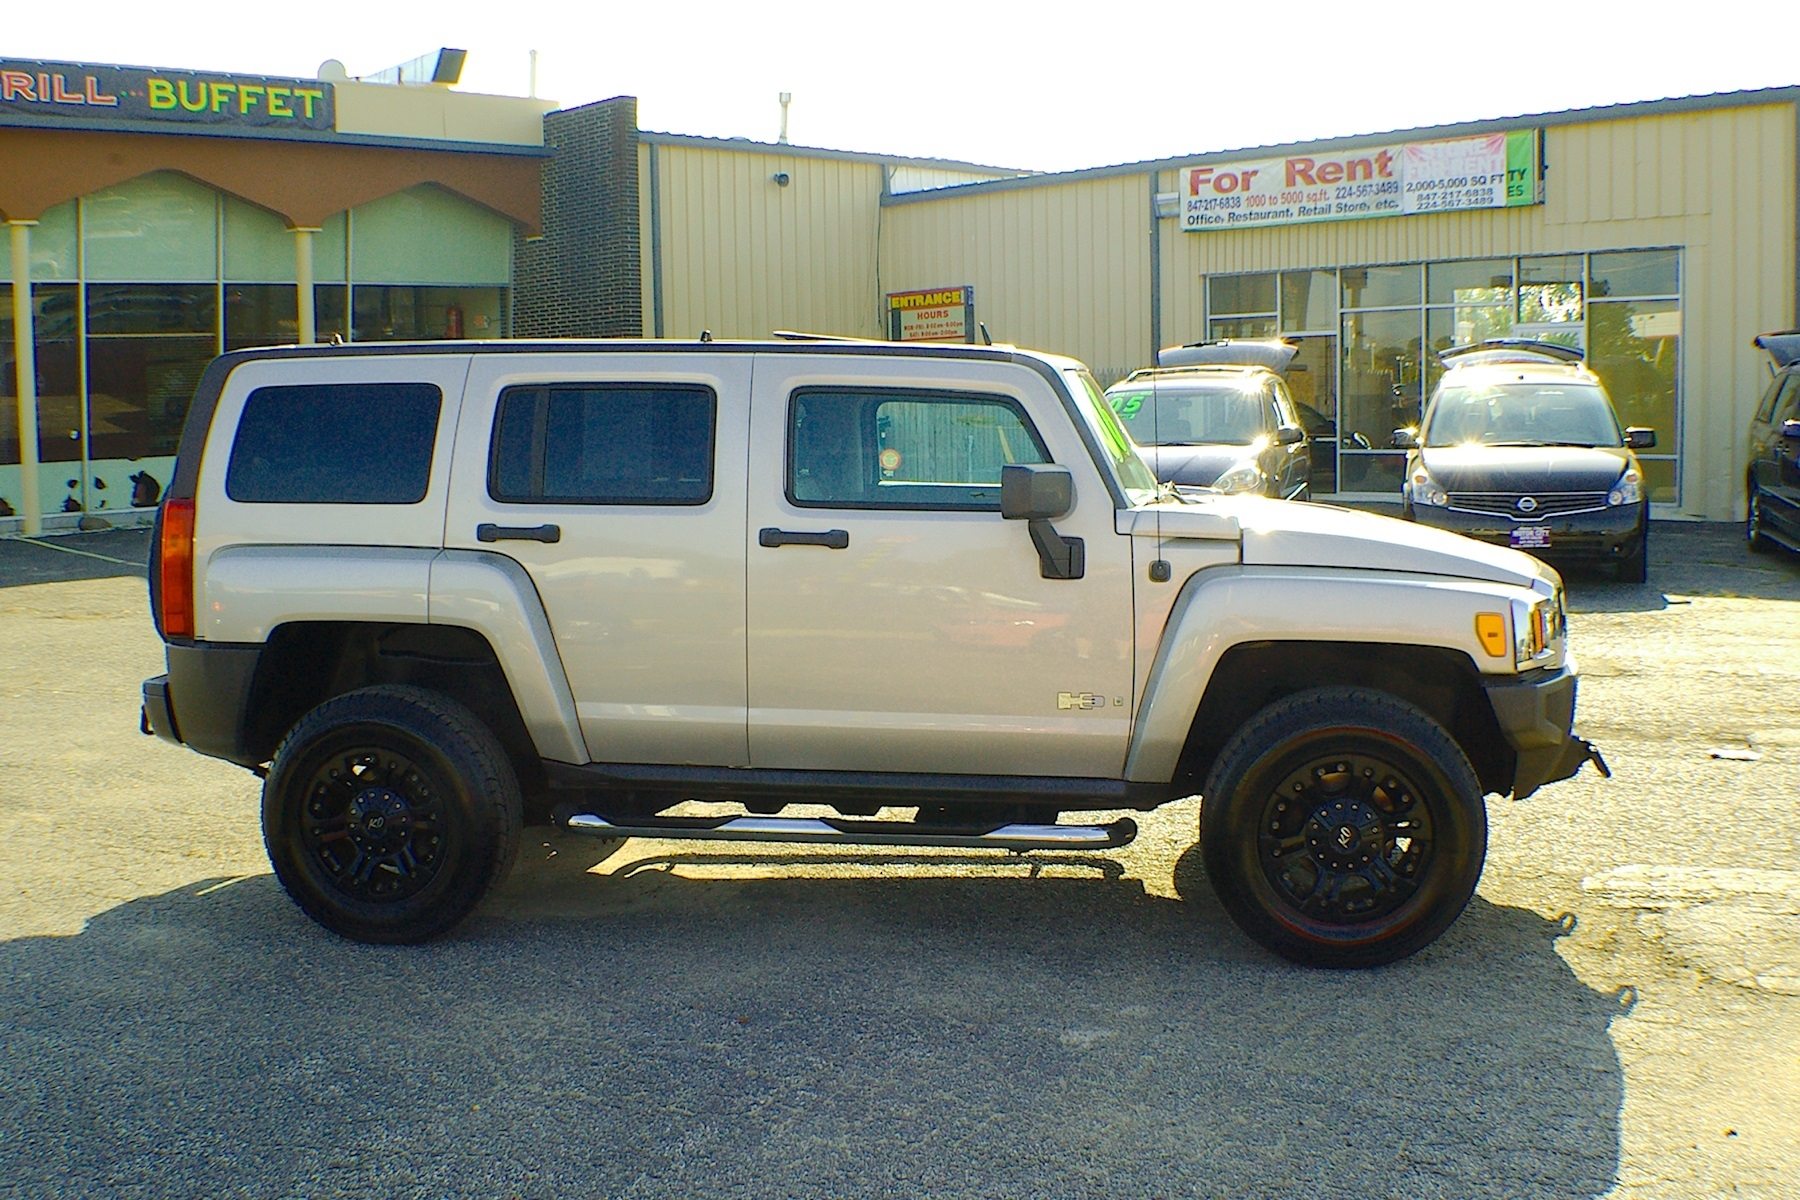 2006 Hummer H3 Pewter 4x4 SUV Used Car Sale Buffalo Grove Deerfield Fox Lake Antioch